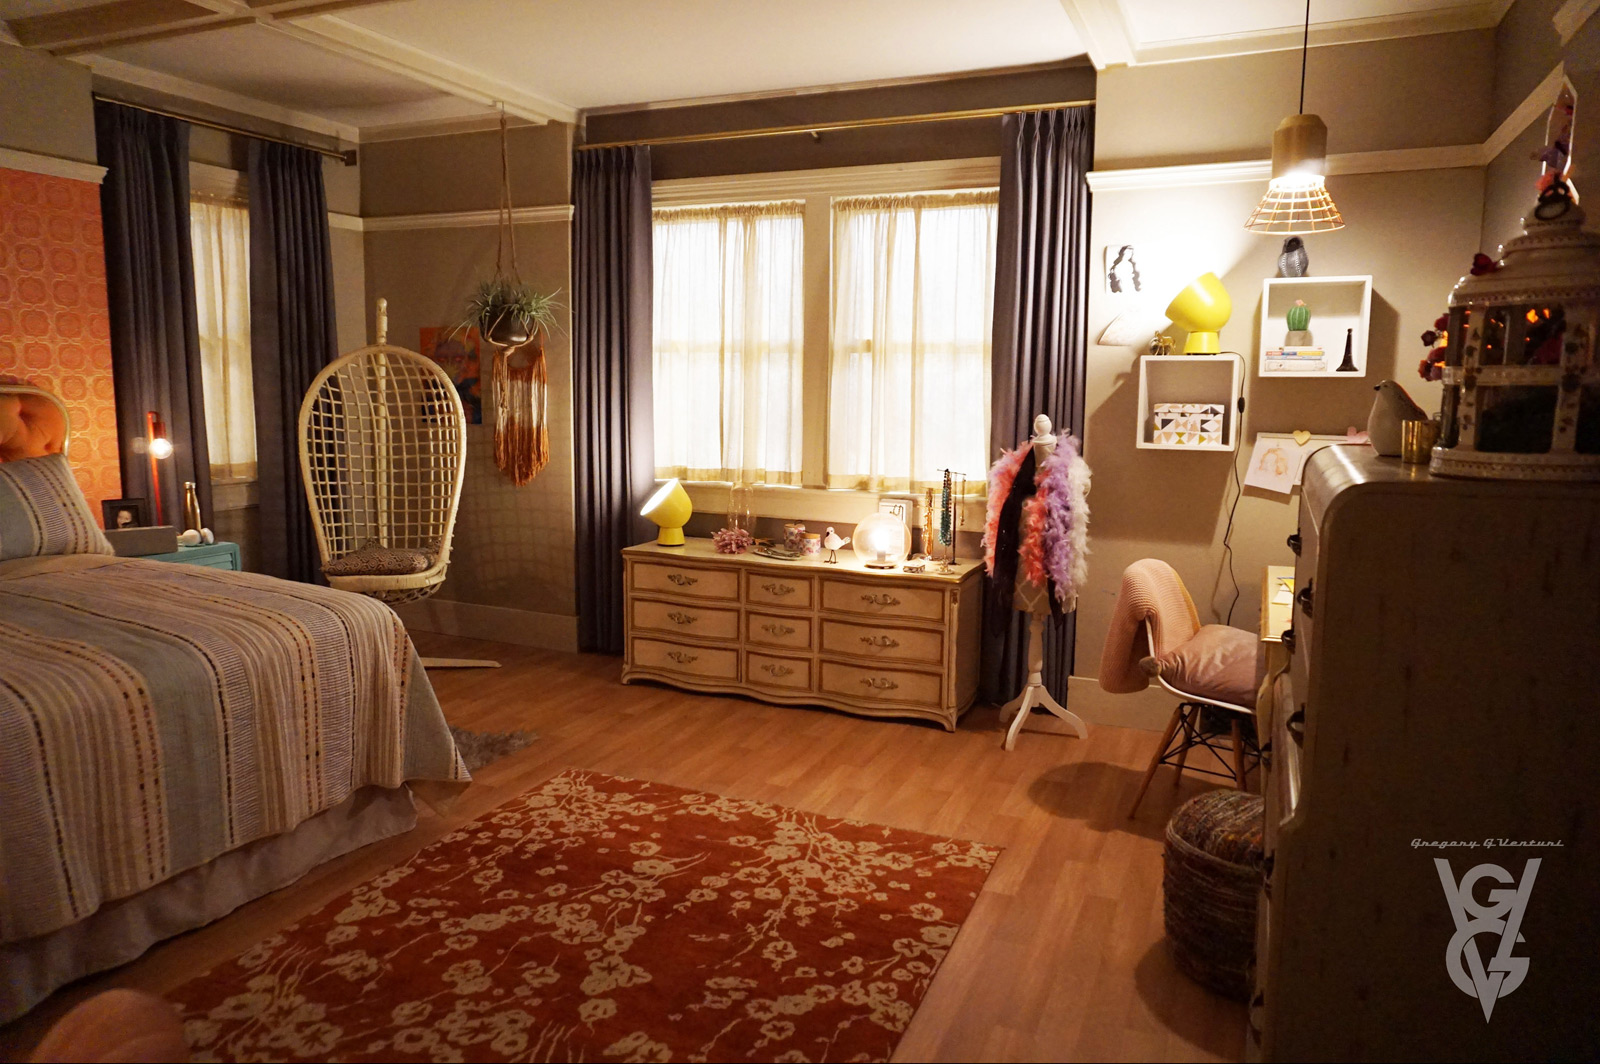 CHARMED: S1 - VERA MANOR - MAGGIE'S ROOM - SET PHOTO